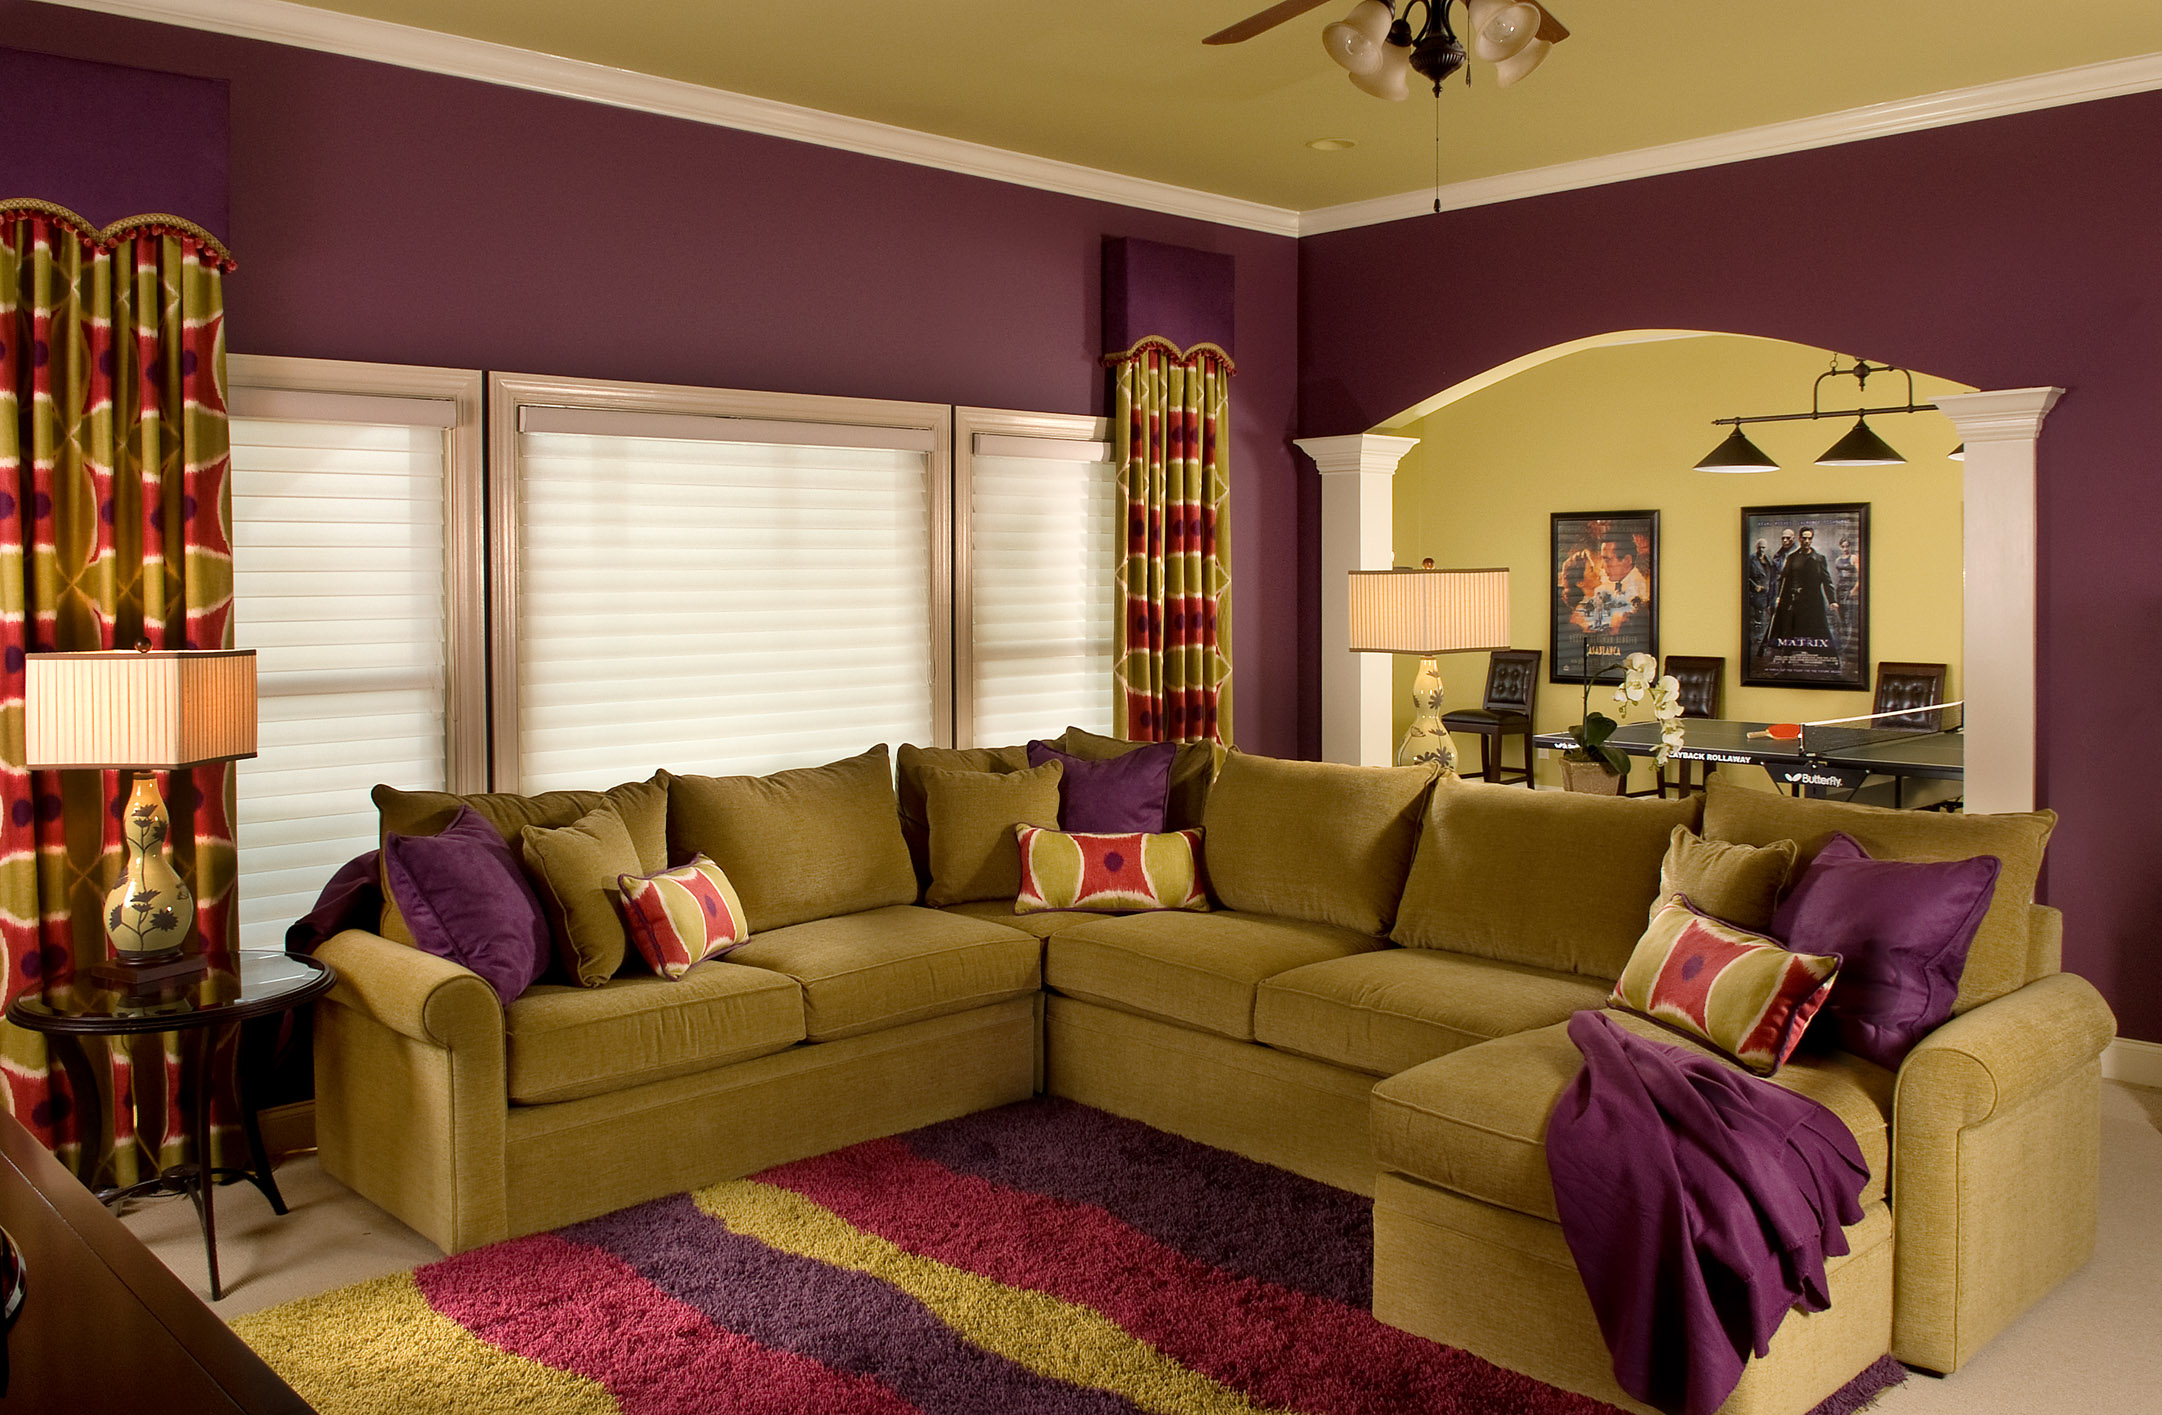 Stunning Living Room Paint Color Ideas with Purple 2162 x 1415 · 645 kB · jpeg